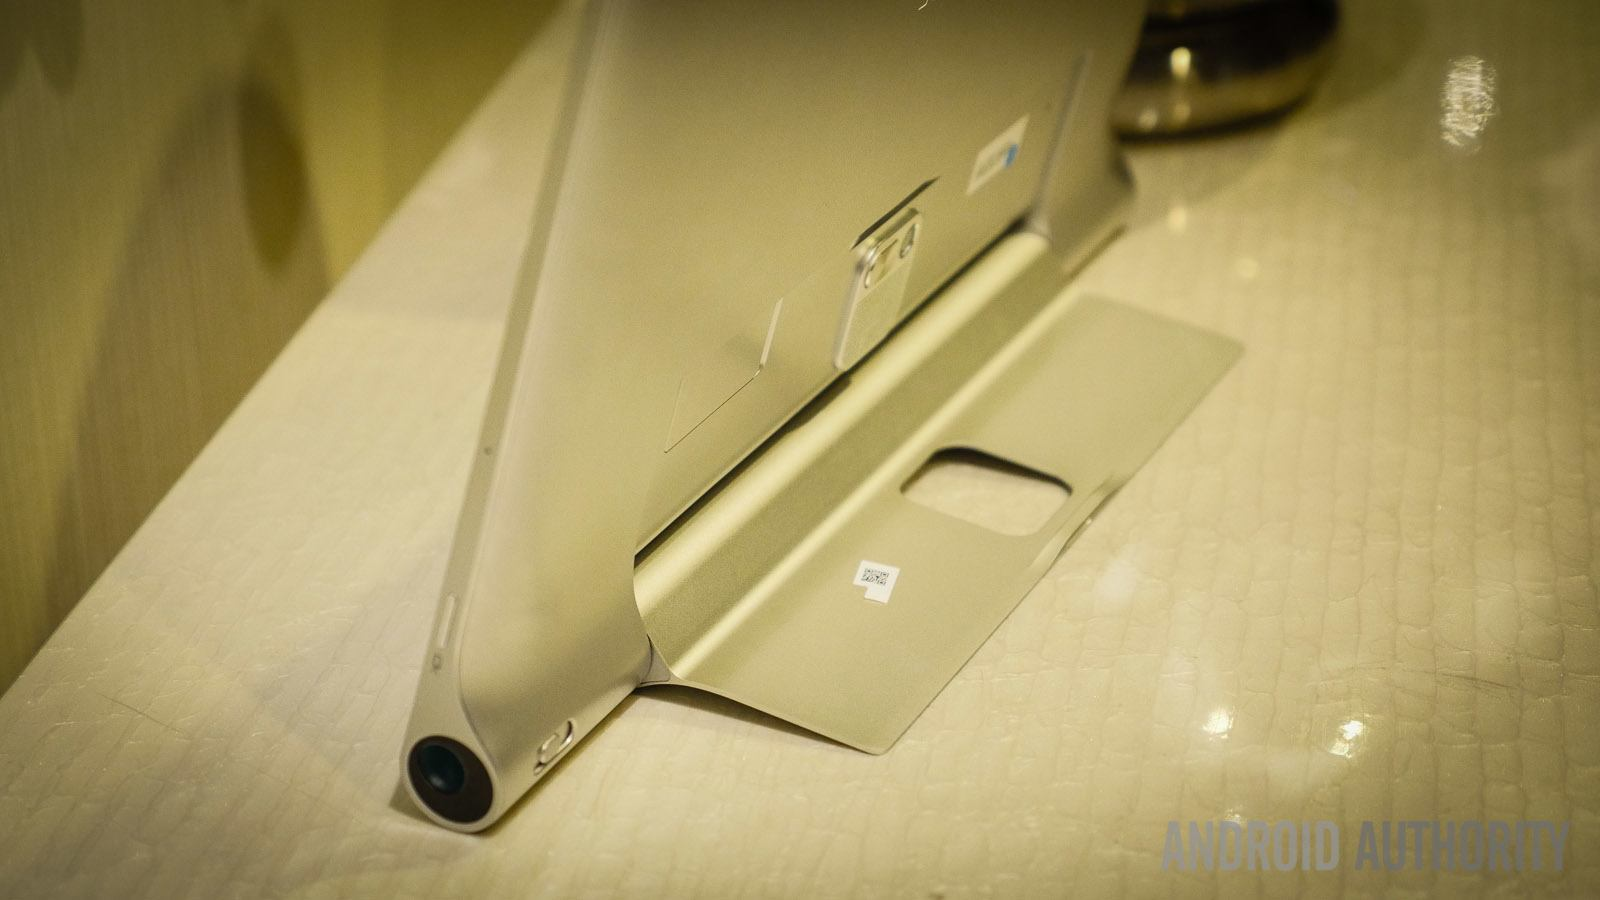 lenovo-yoga-tablet-2-pro-first-look-aa-6-of-19